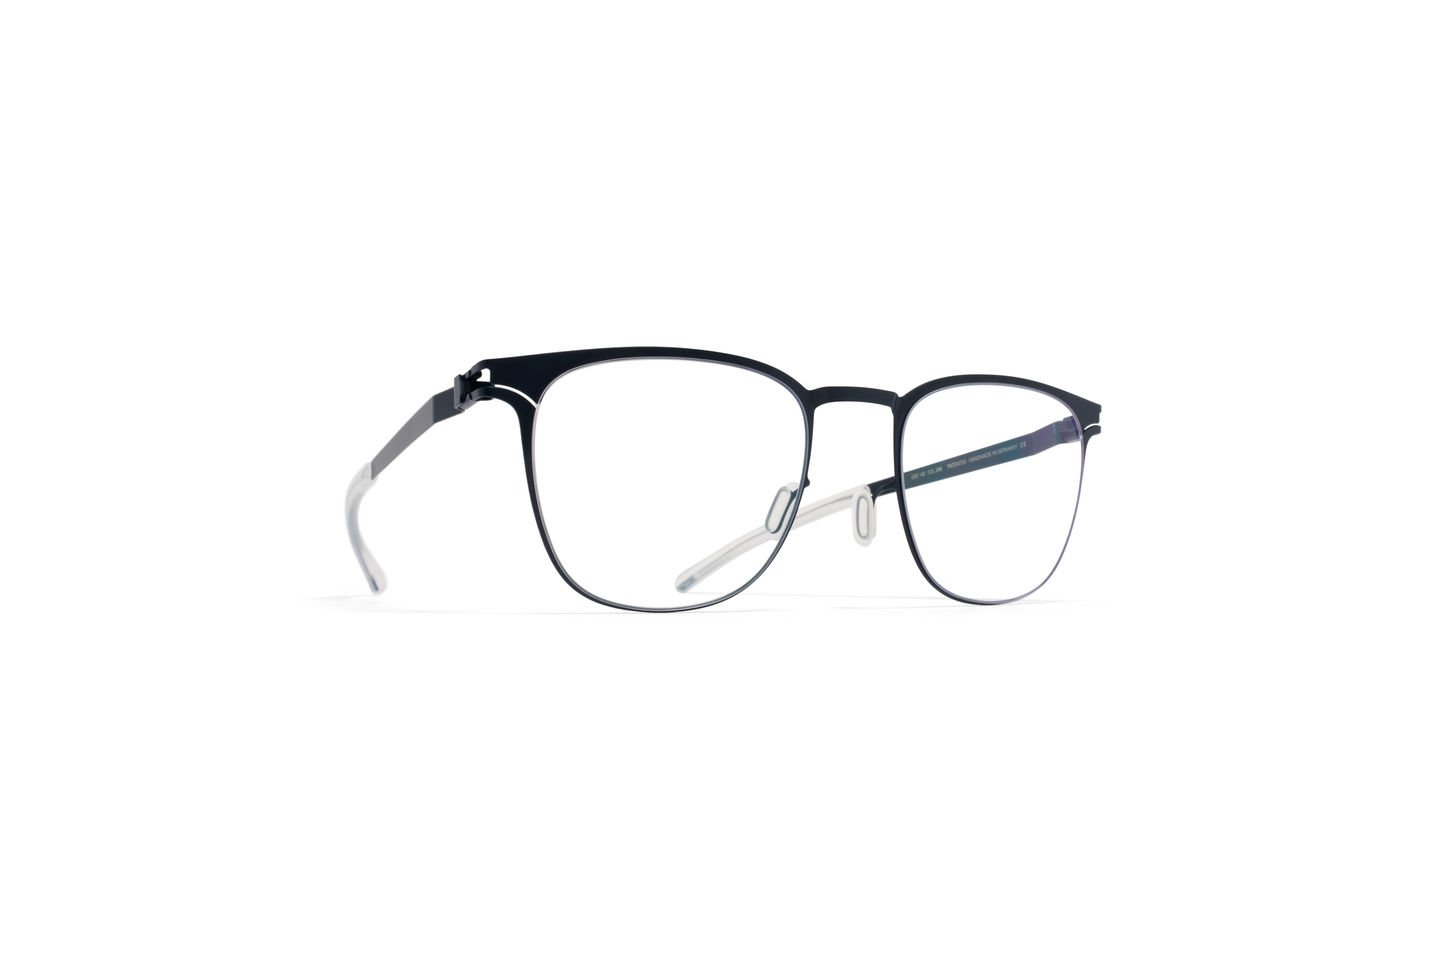 Eyeglasses Mykita THABANI 248-Nightsky Decades Optical Collection Unisex